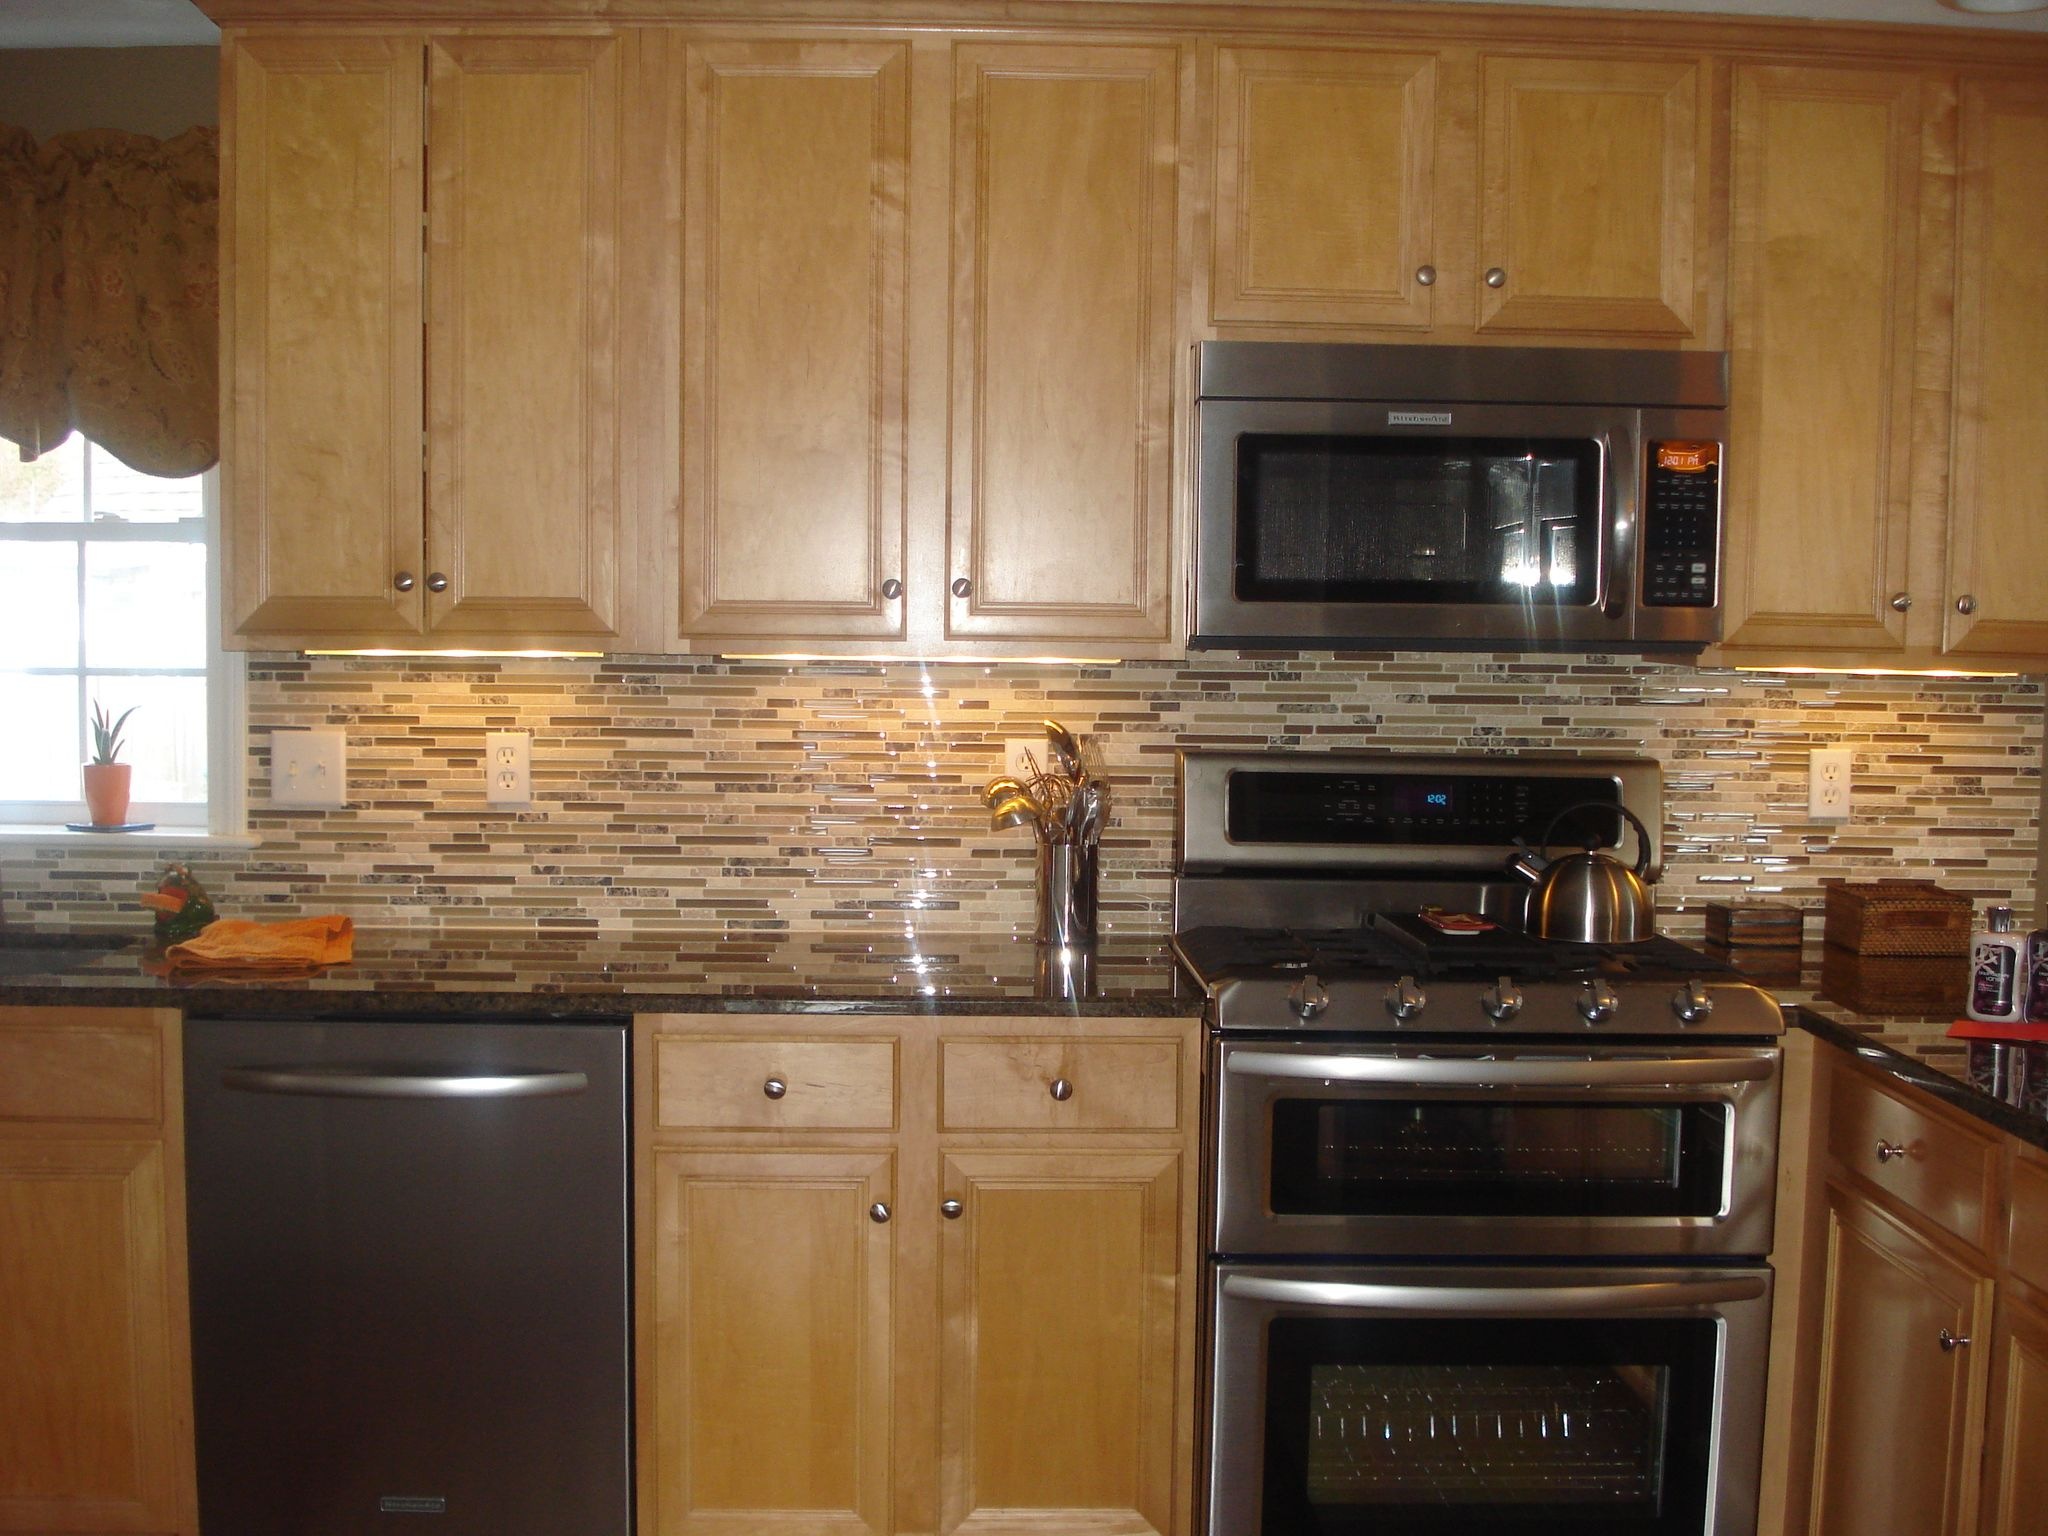 Interior Black Granite Countertop And Beige Mozaic Tile Backsplash